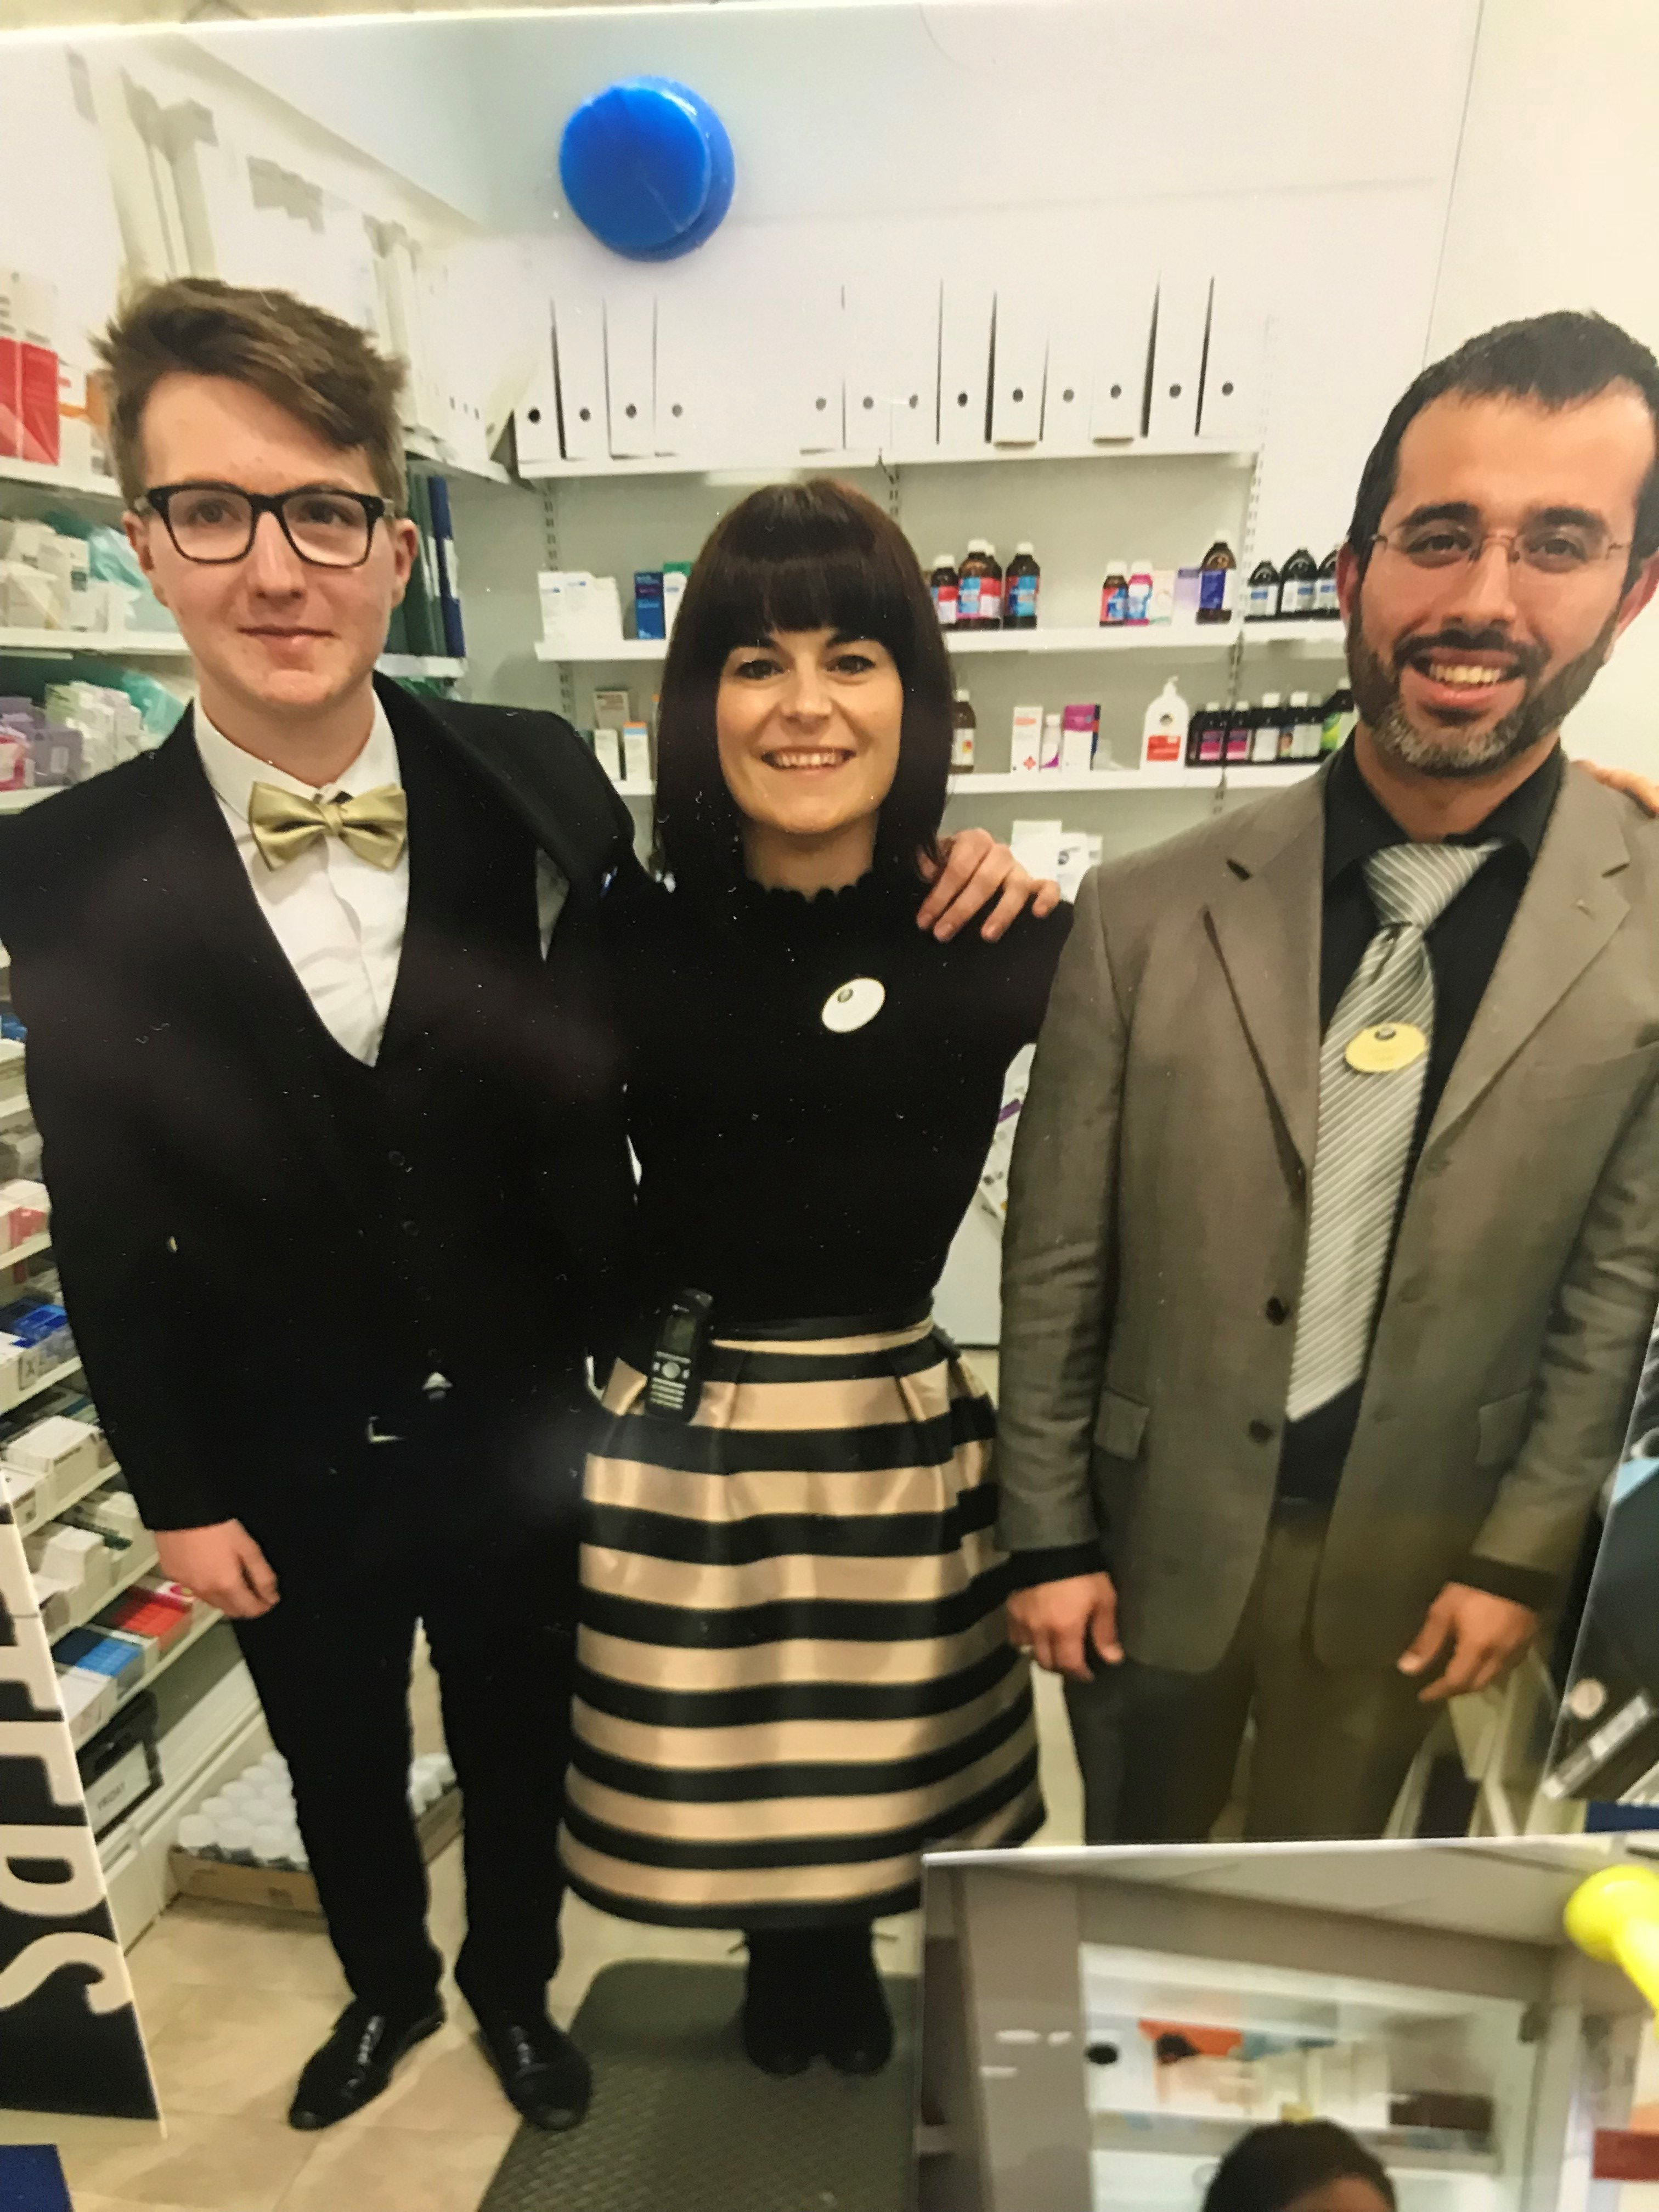 Luke's Pharmacy career journey